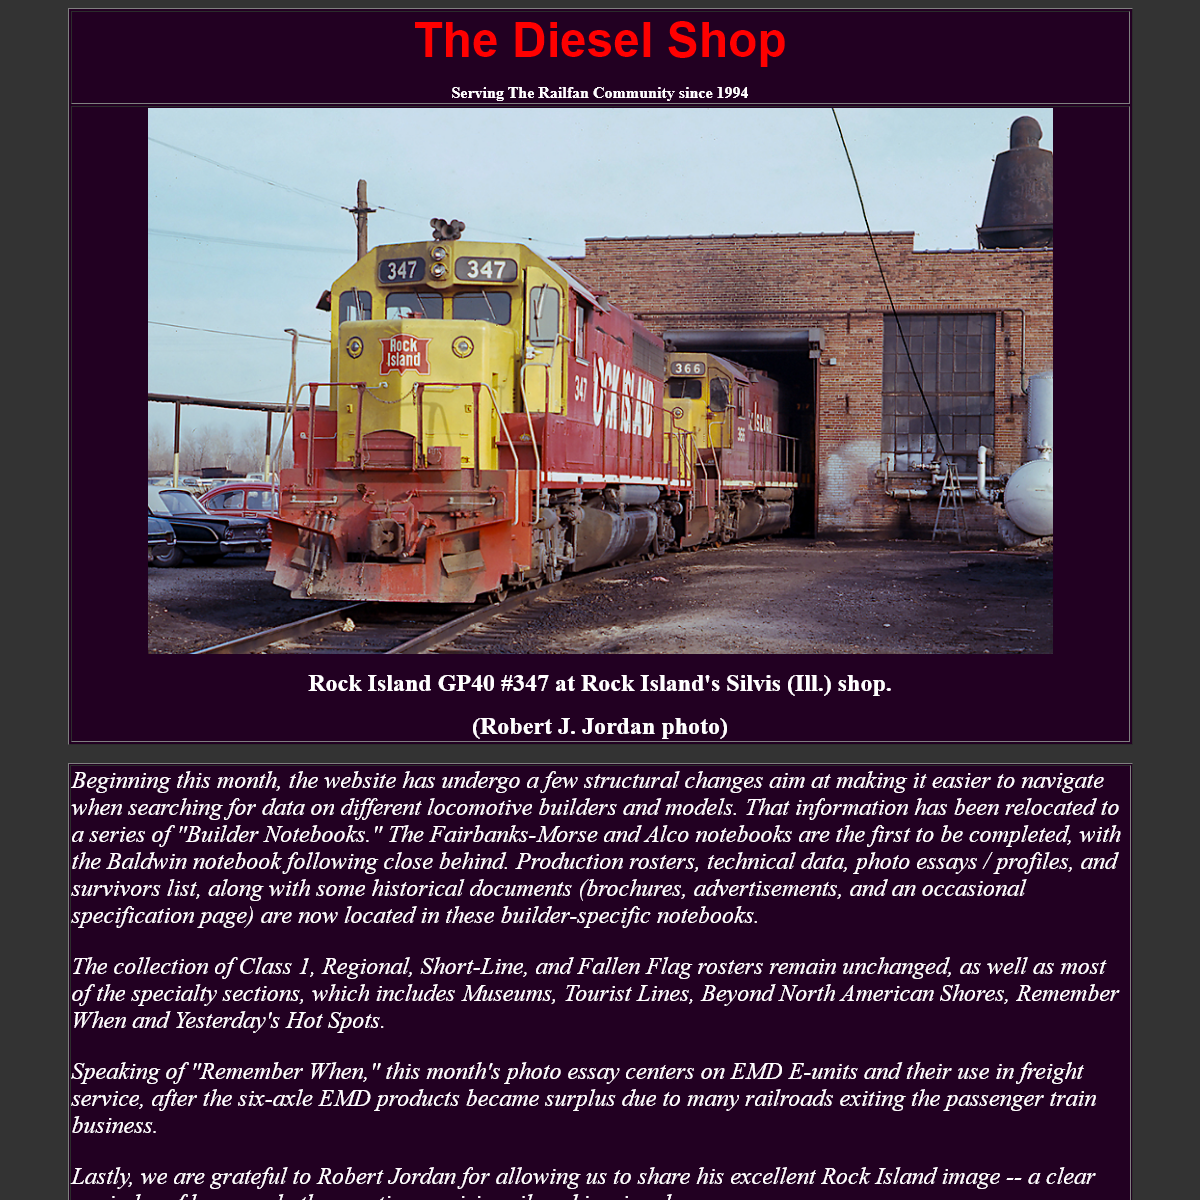 THE DIESEL SHOP